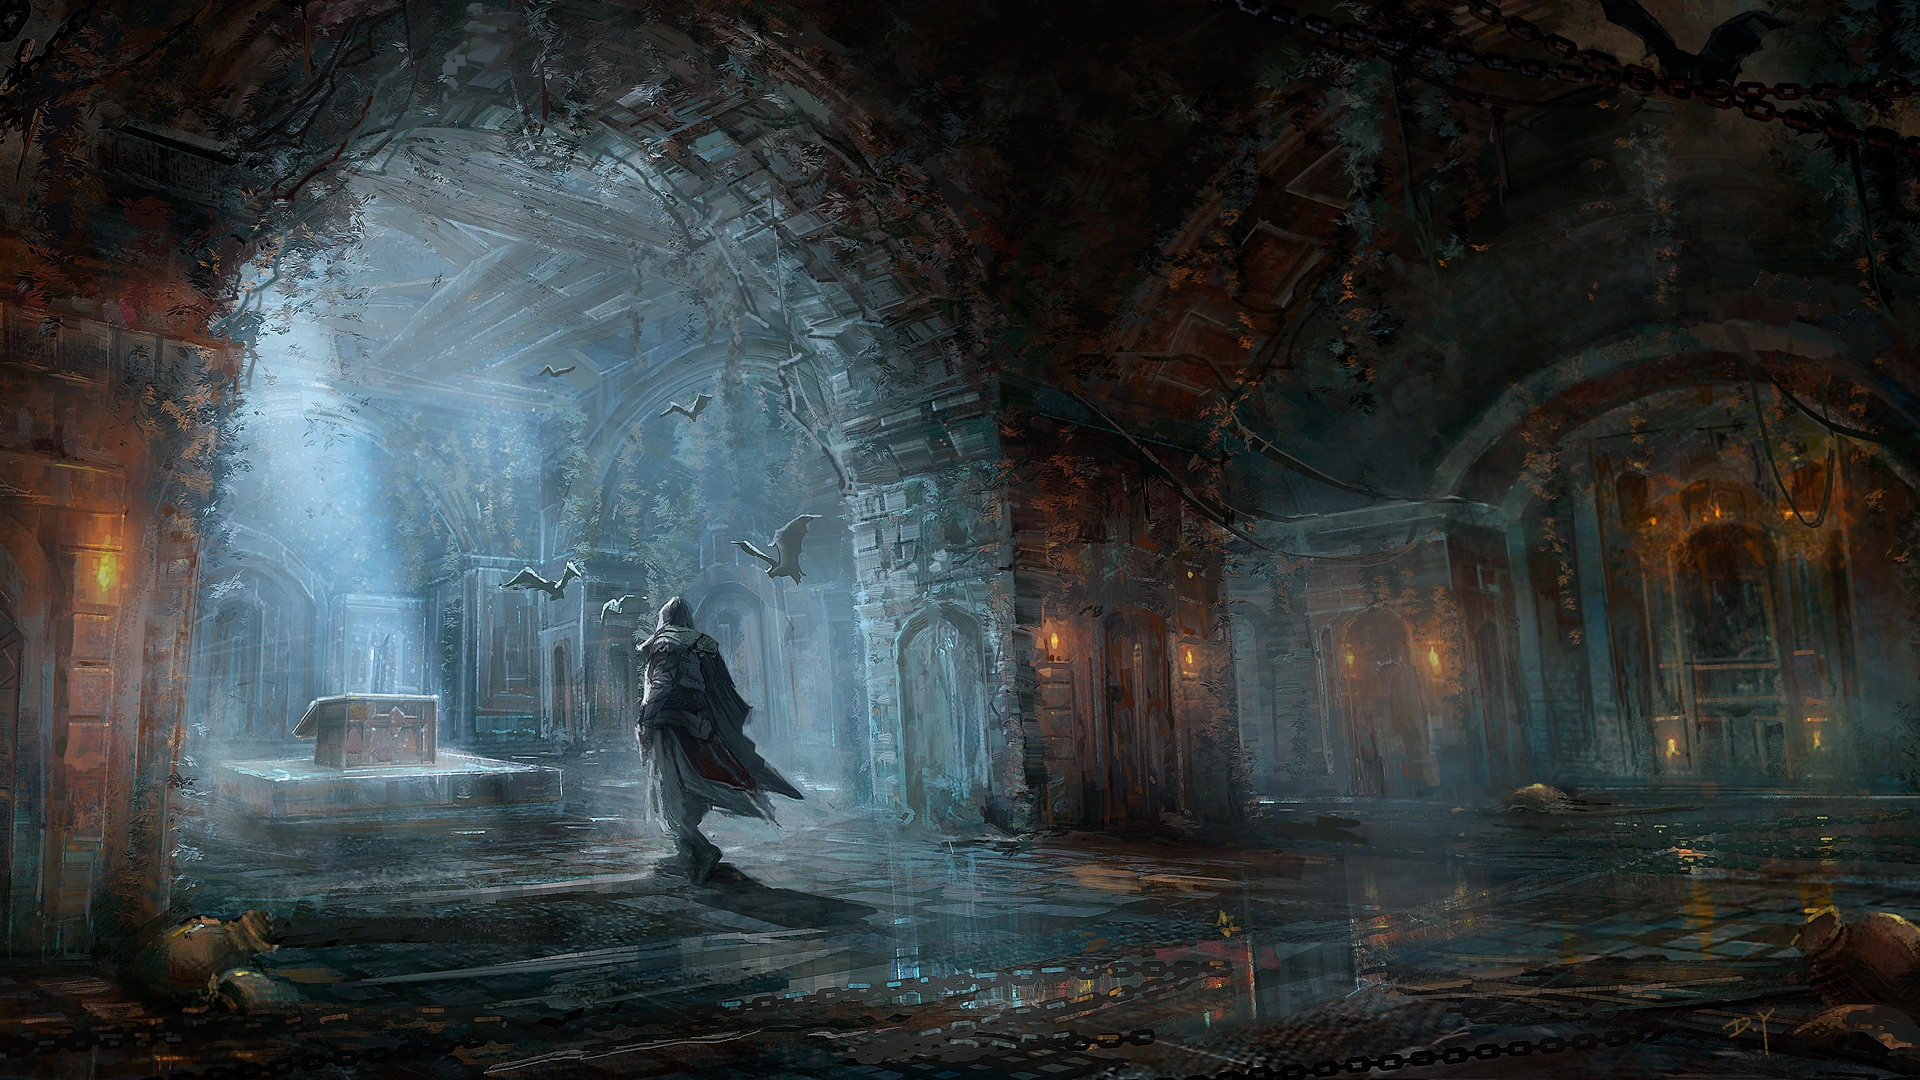 Download Wallpaper 1920x1080 Assassins Creed Chest House Bats